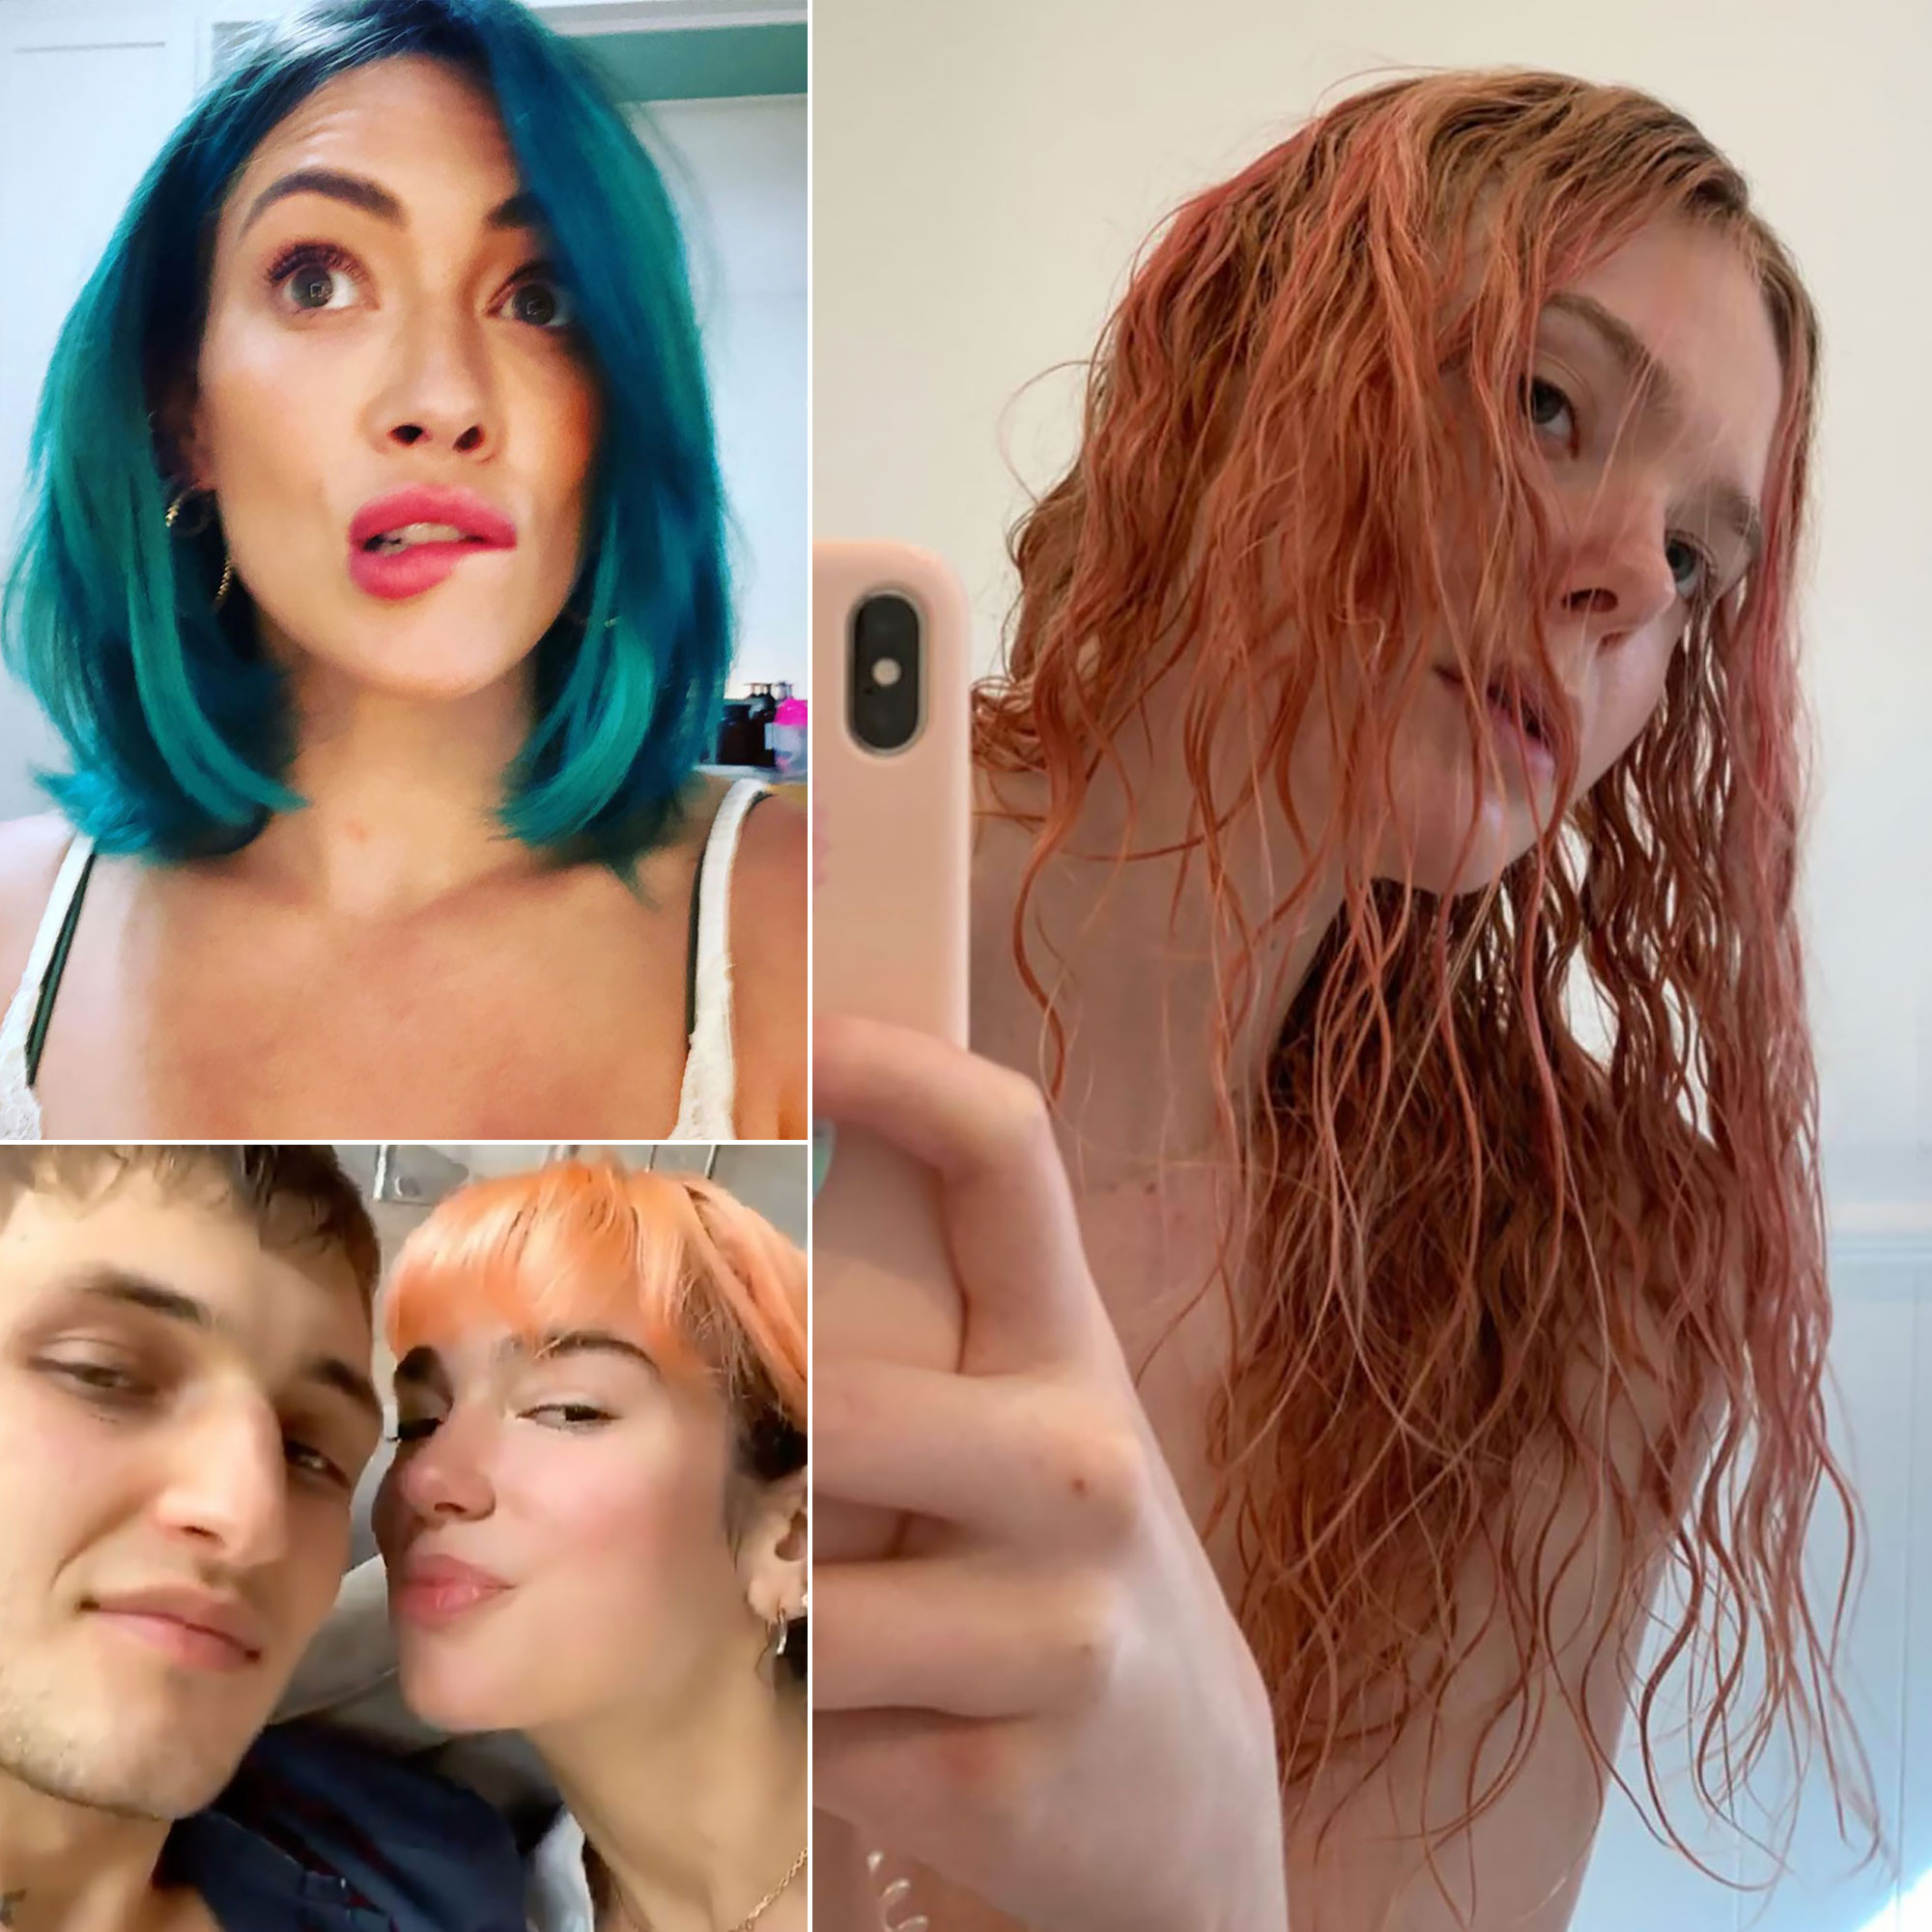 Celebrities Bold New Hair Colors In Quarantine Amid Covid 19 Pandemic